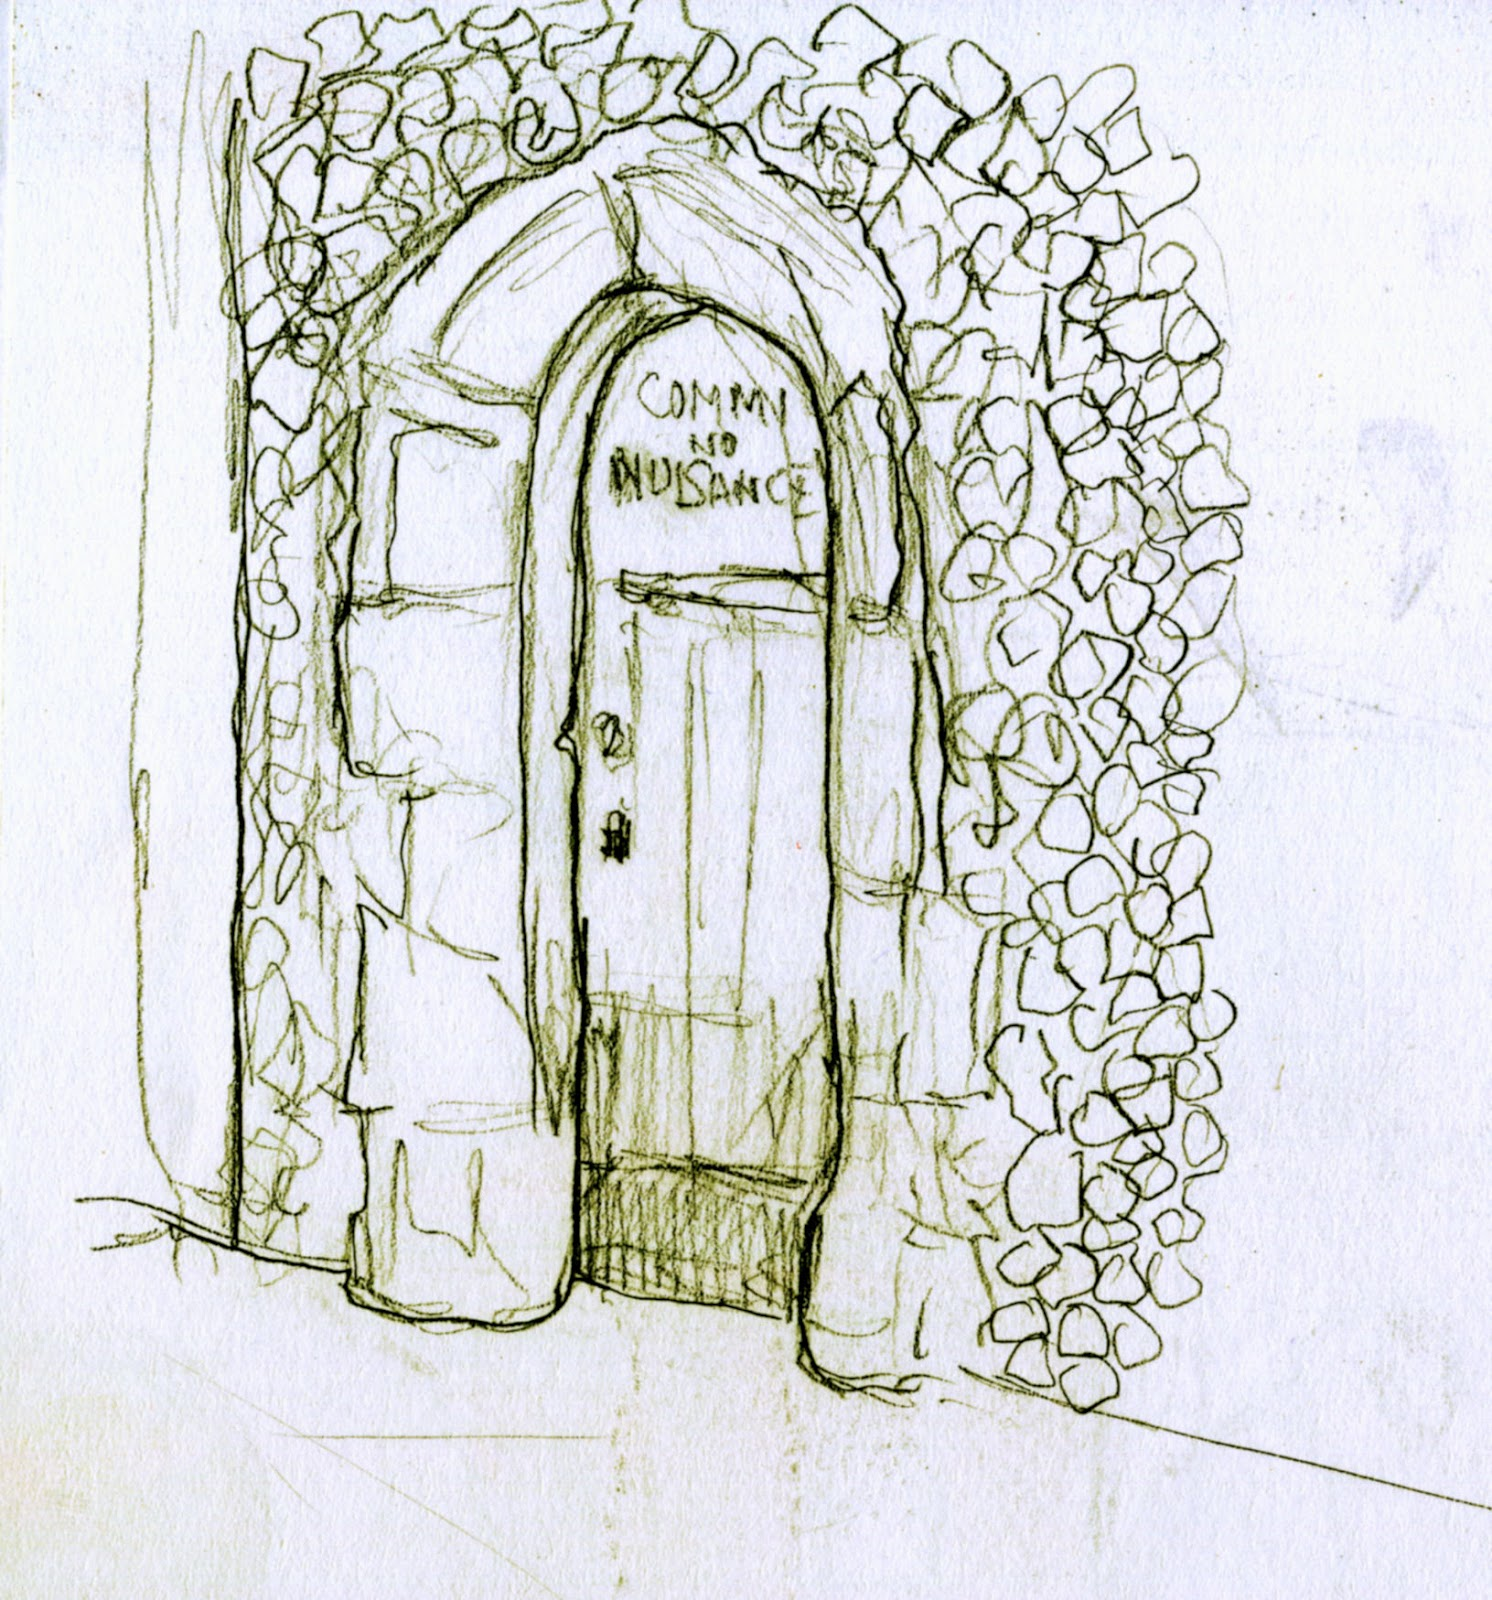 What to draw on the old door